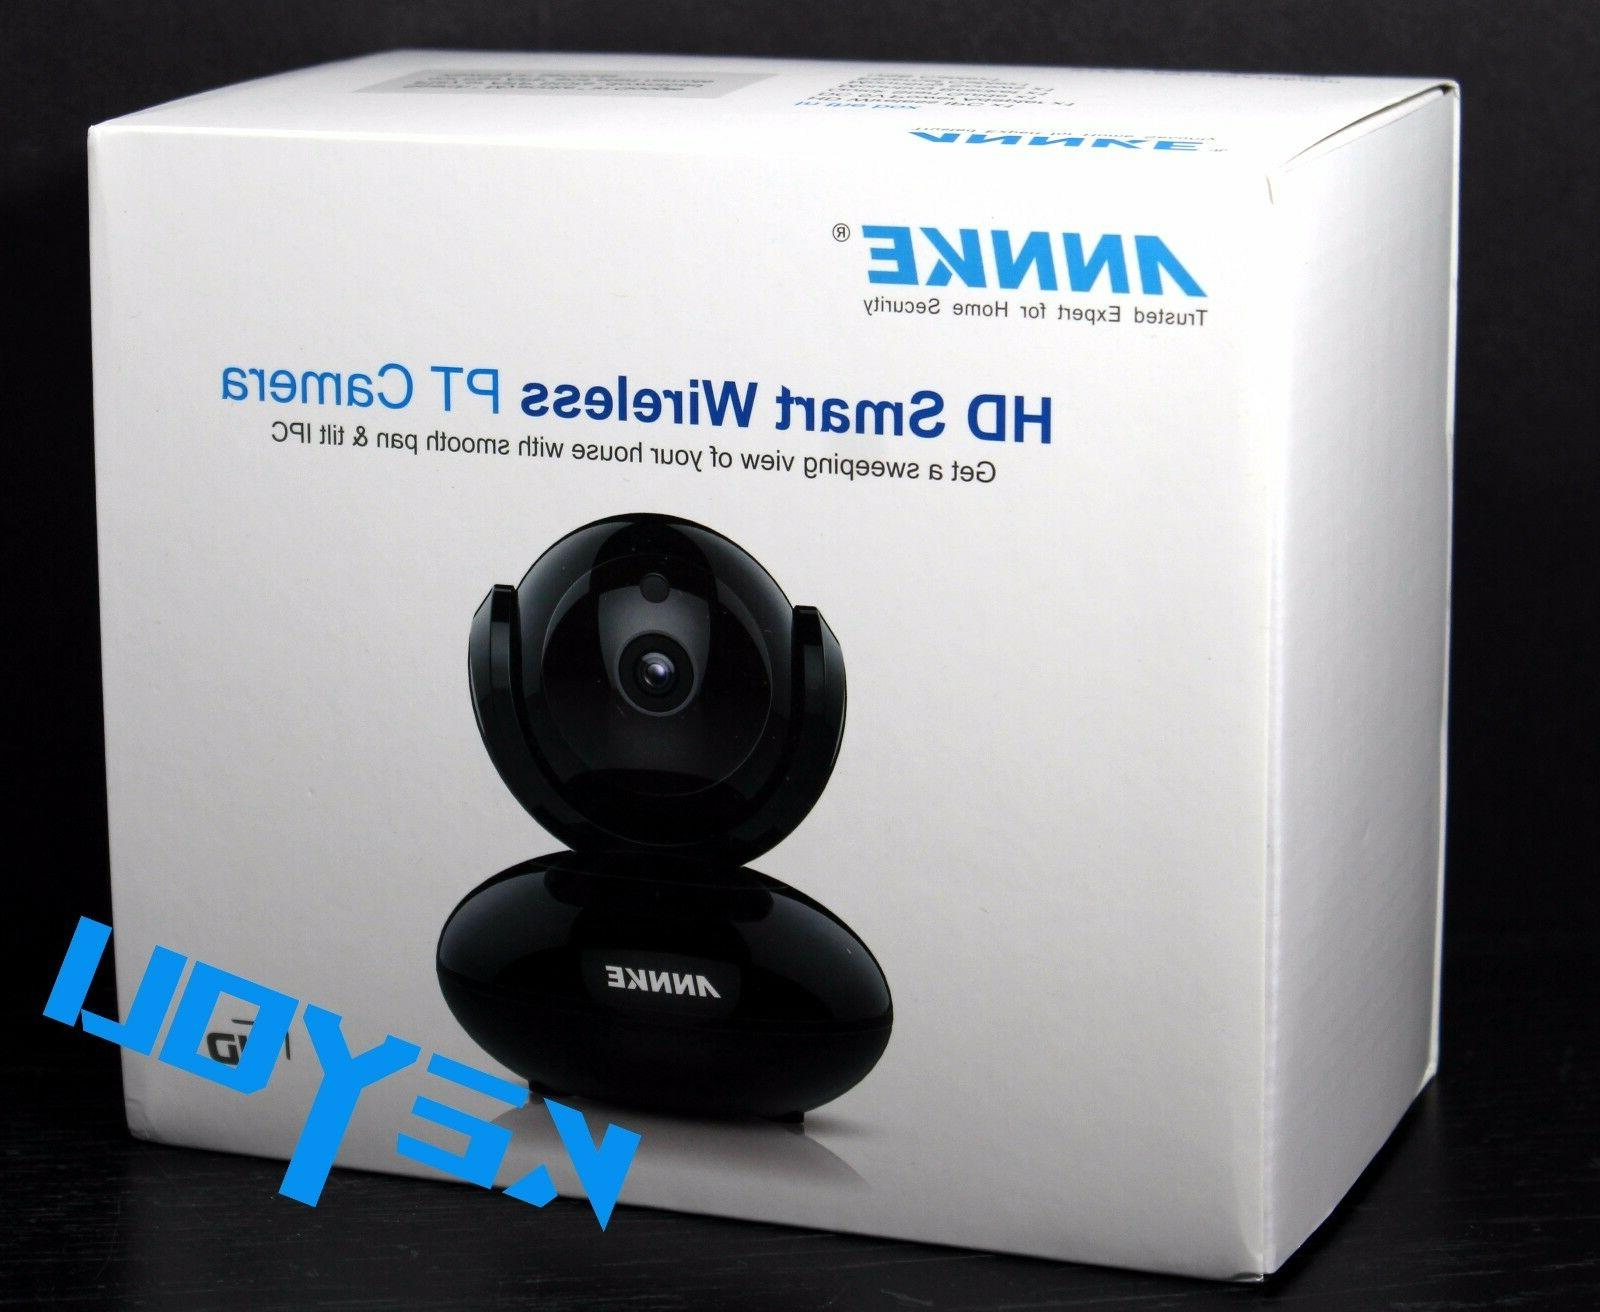 hd 1080p smart wi fi pan